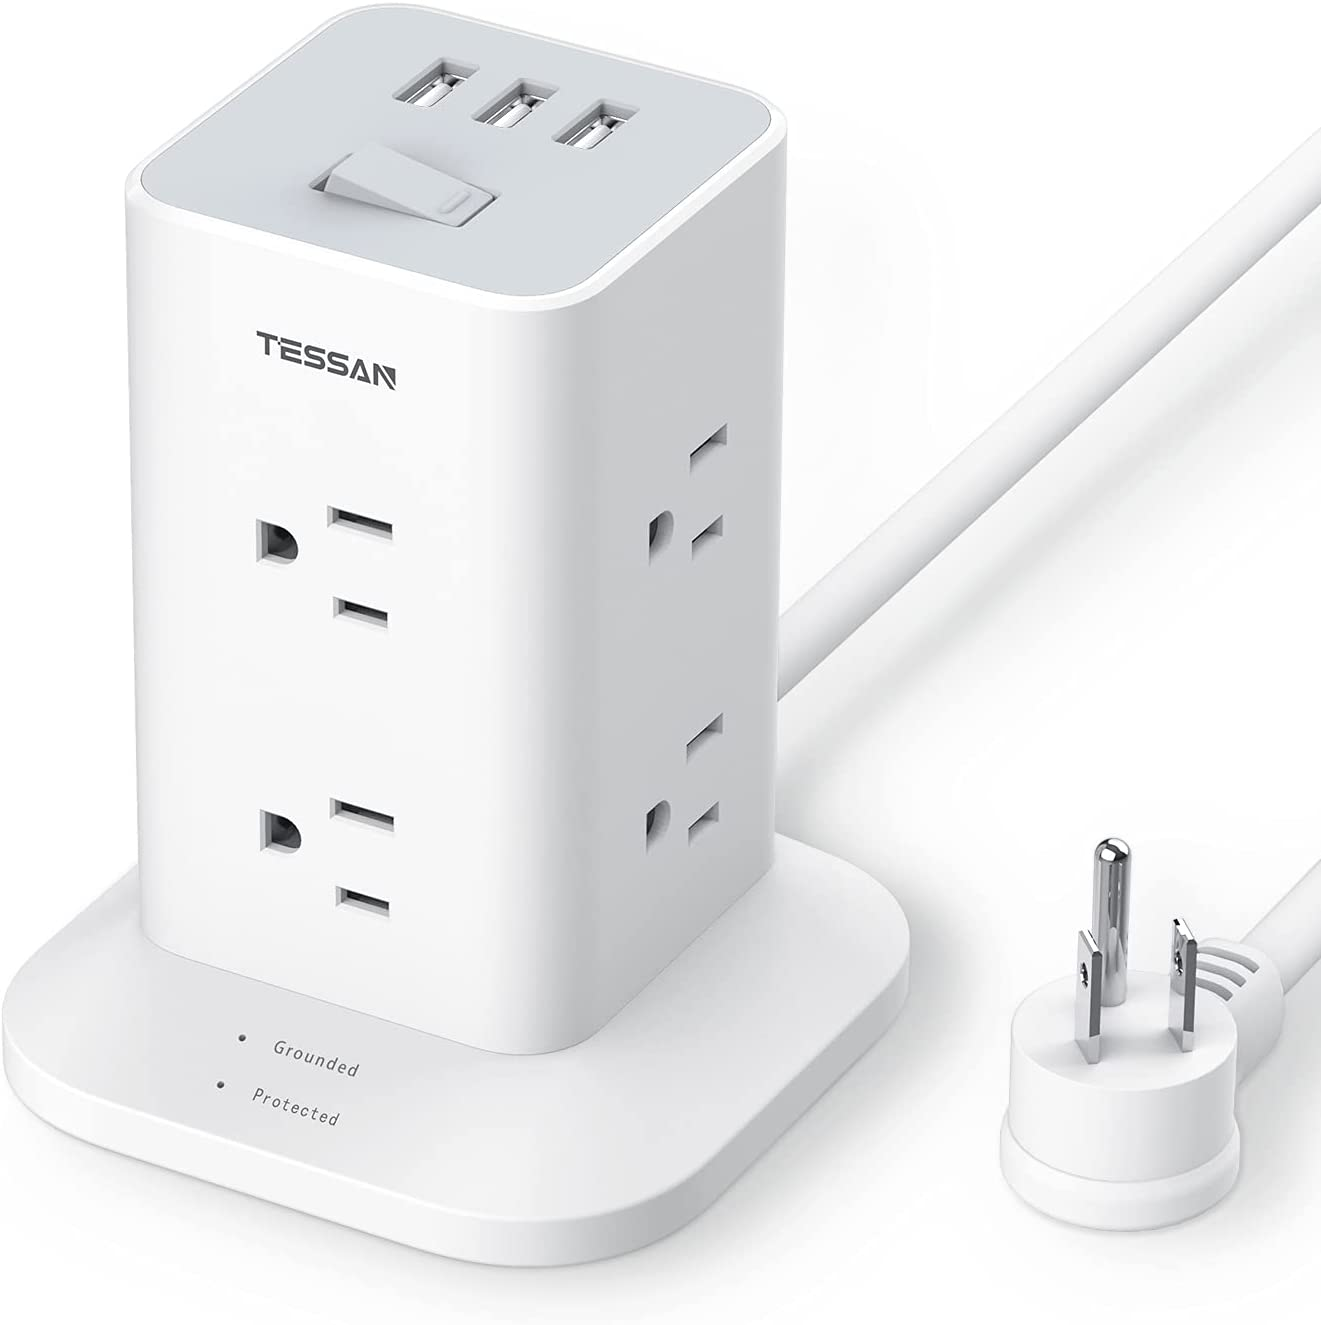 TESSAN Power Strip High quality Tower Surge Protector Outlets New Free Shipping Spaced Wide a 8